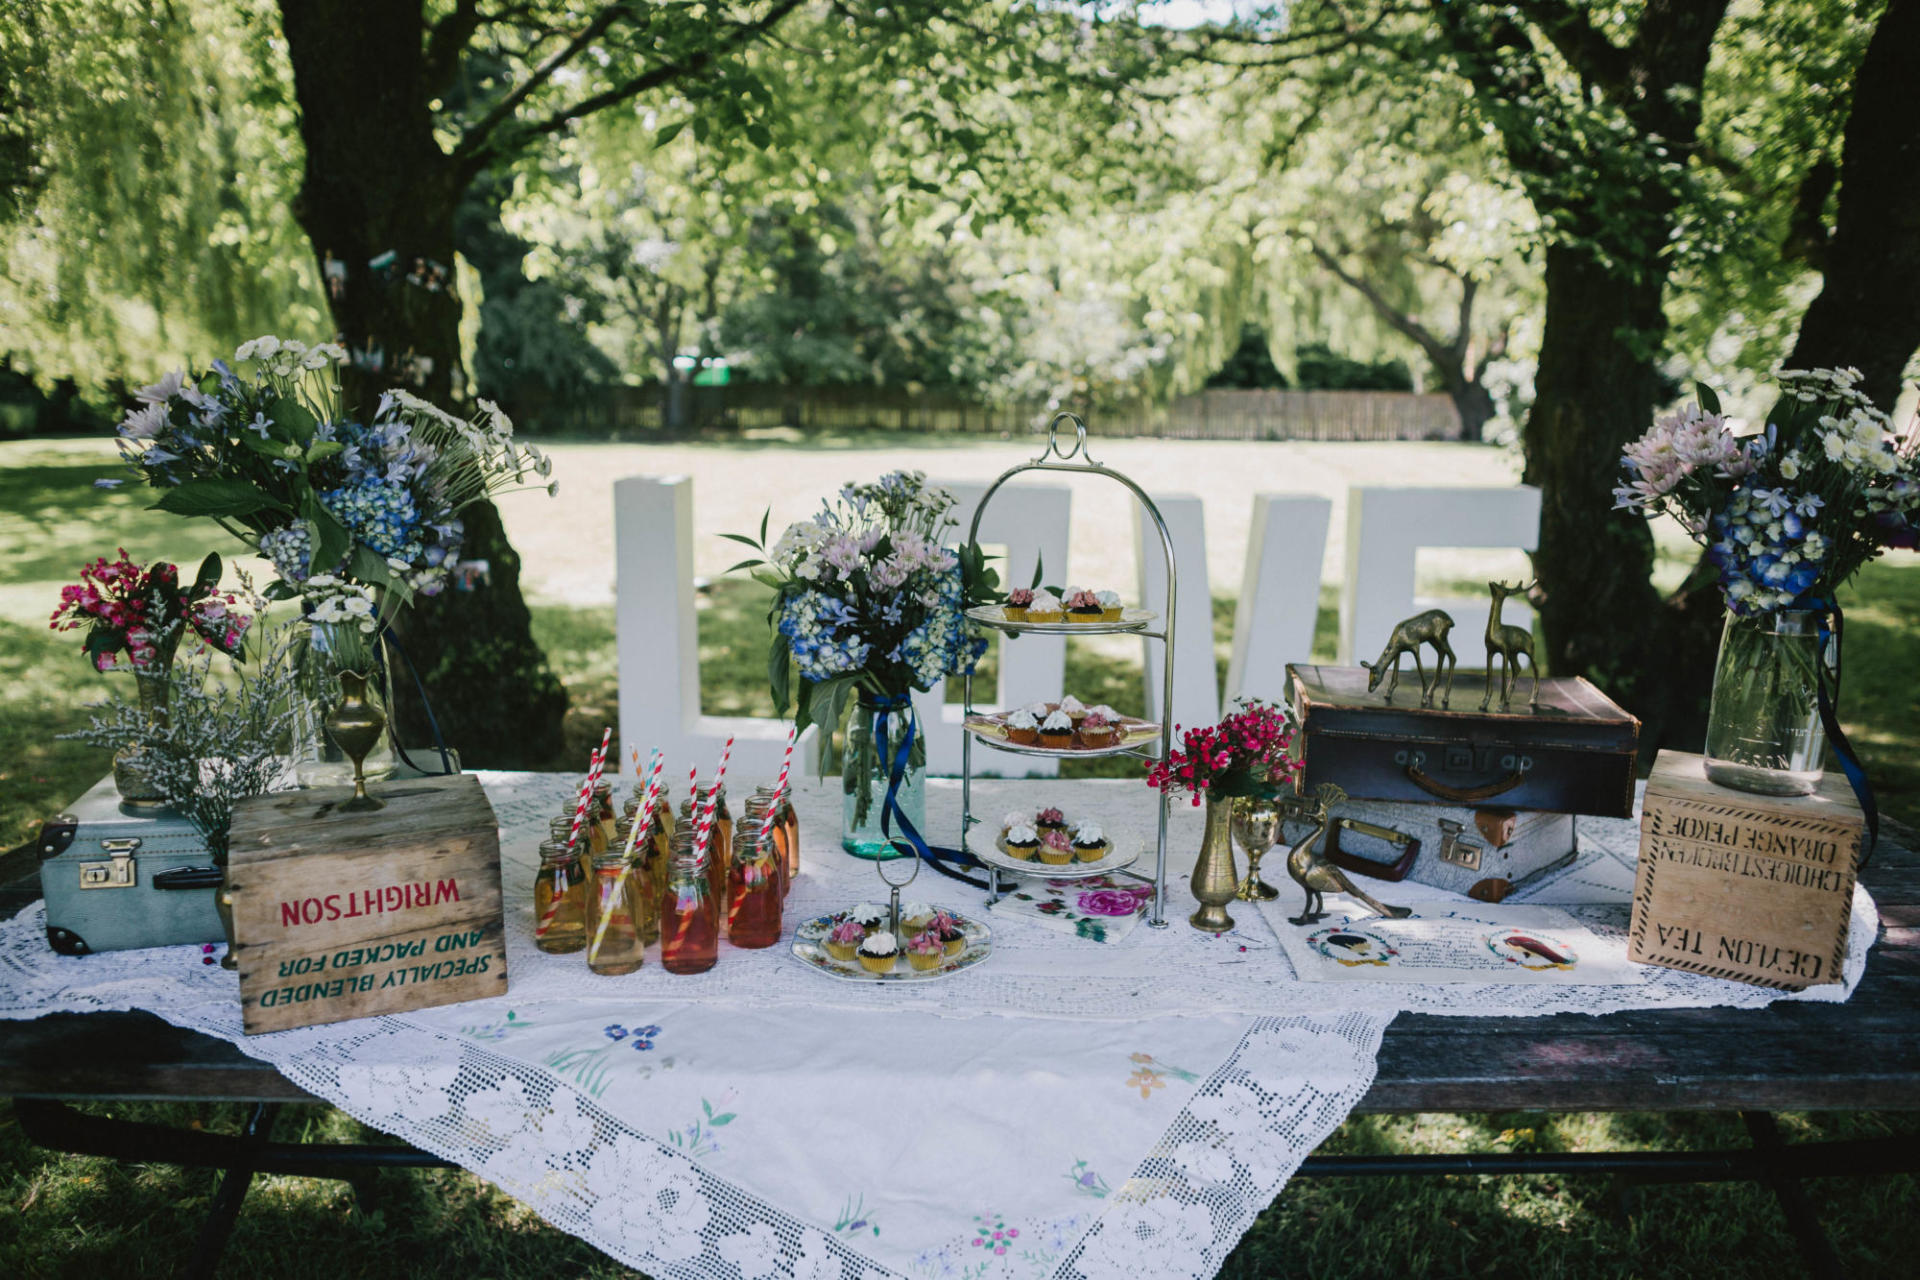 Wedding styling wanaka queenstown fantail weddings fantail weddings styling queenstown junglespirit Images